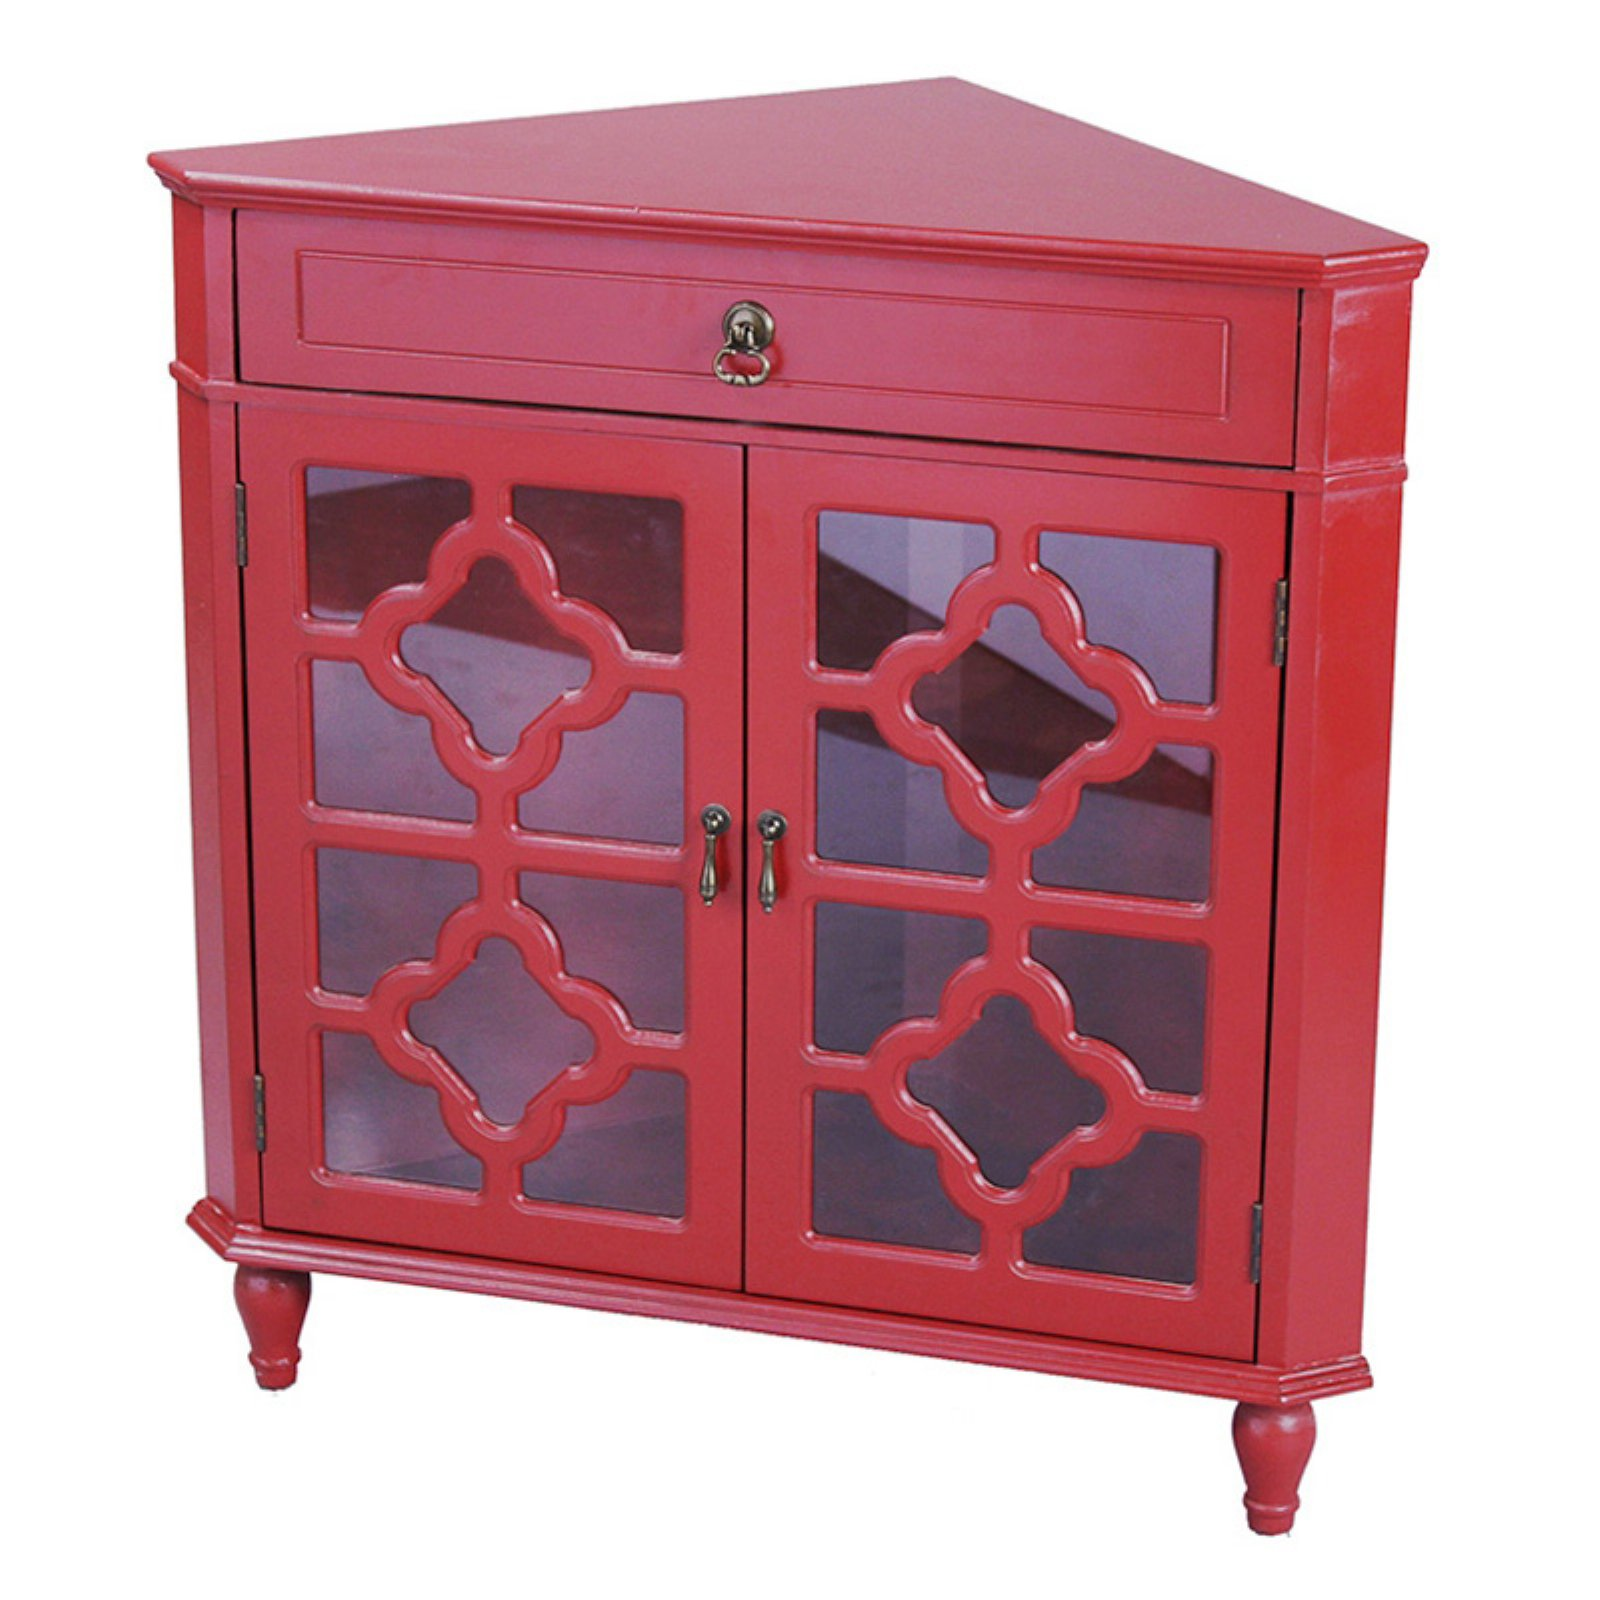 Heather Ann Creations Frasera Quatrefoil Glass Corner Cabinet